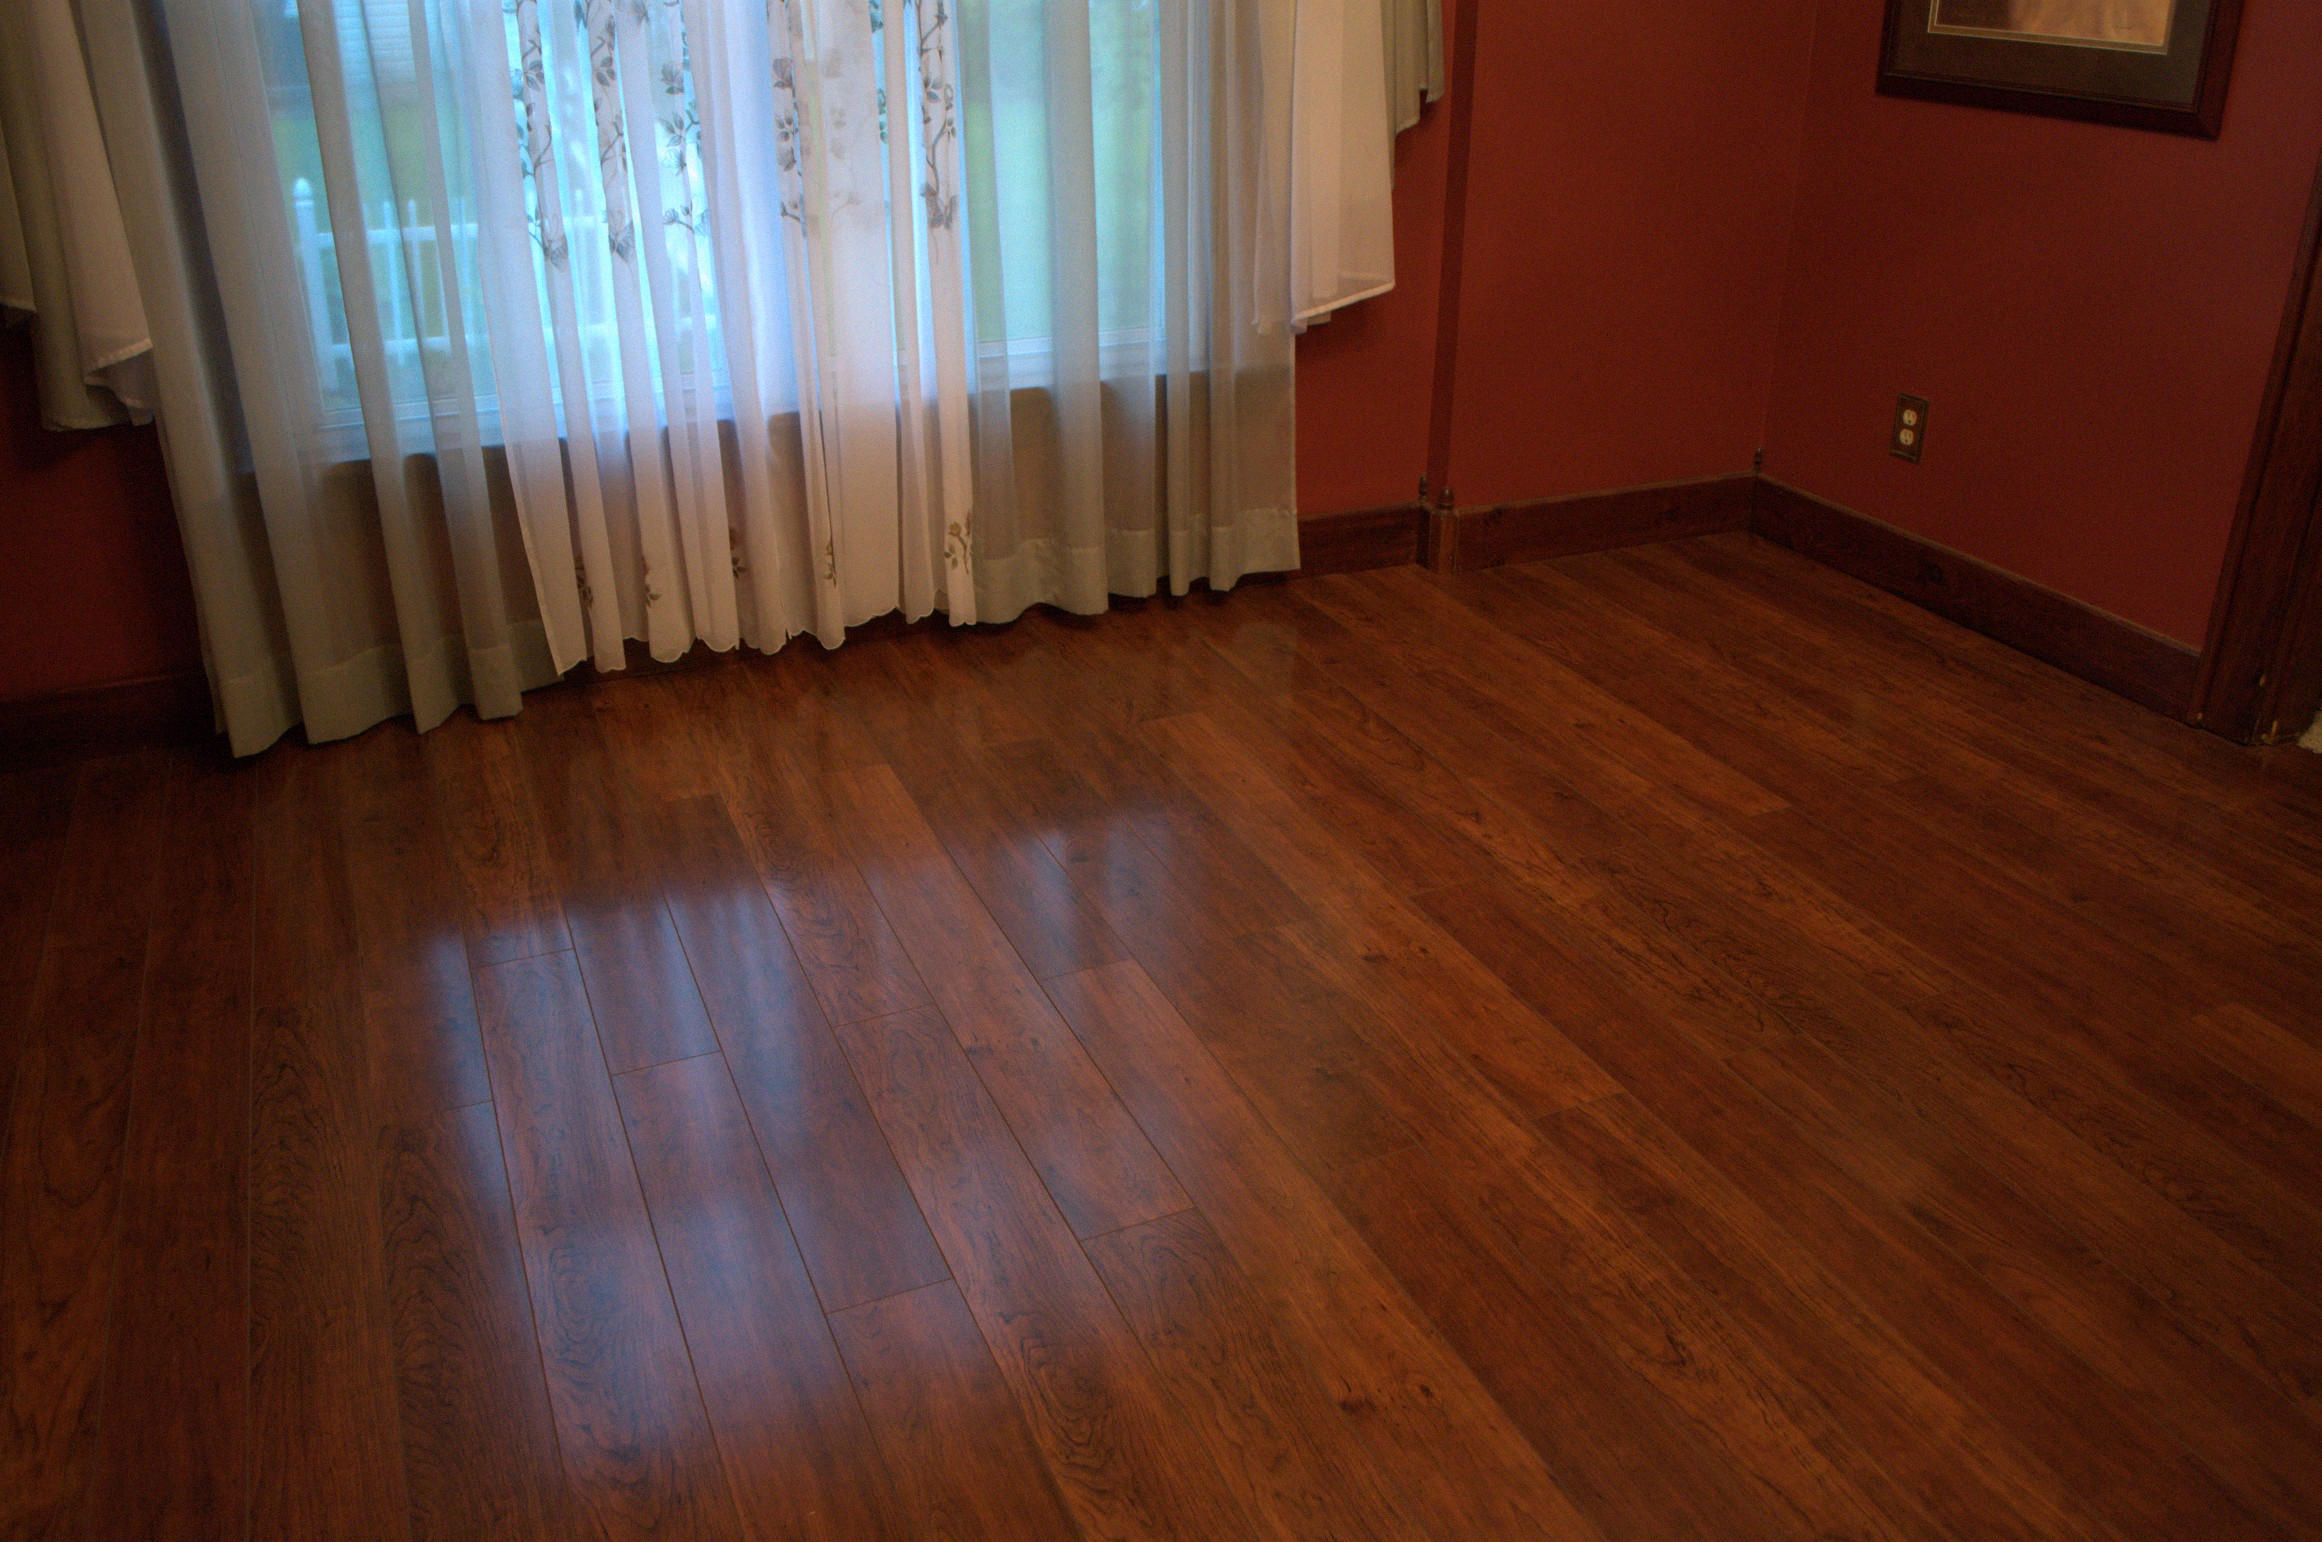 Extremely Durable Flooring : Finished swiftlock floor on top of old